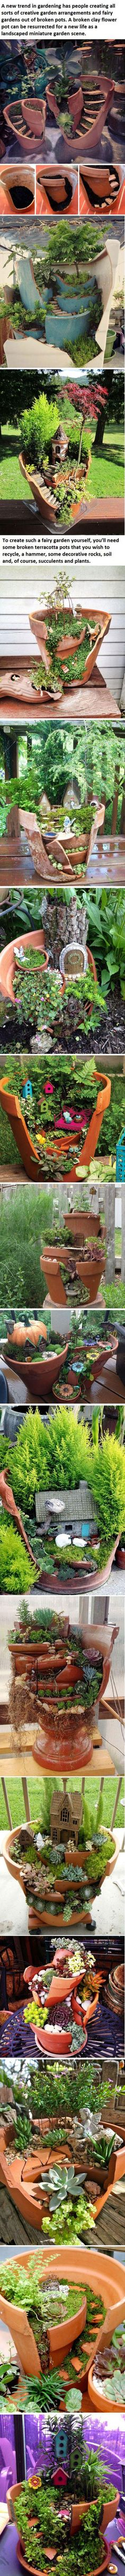 18 Broken Pots Turned Into Beautiful Fairy Gardens